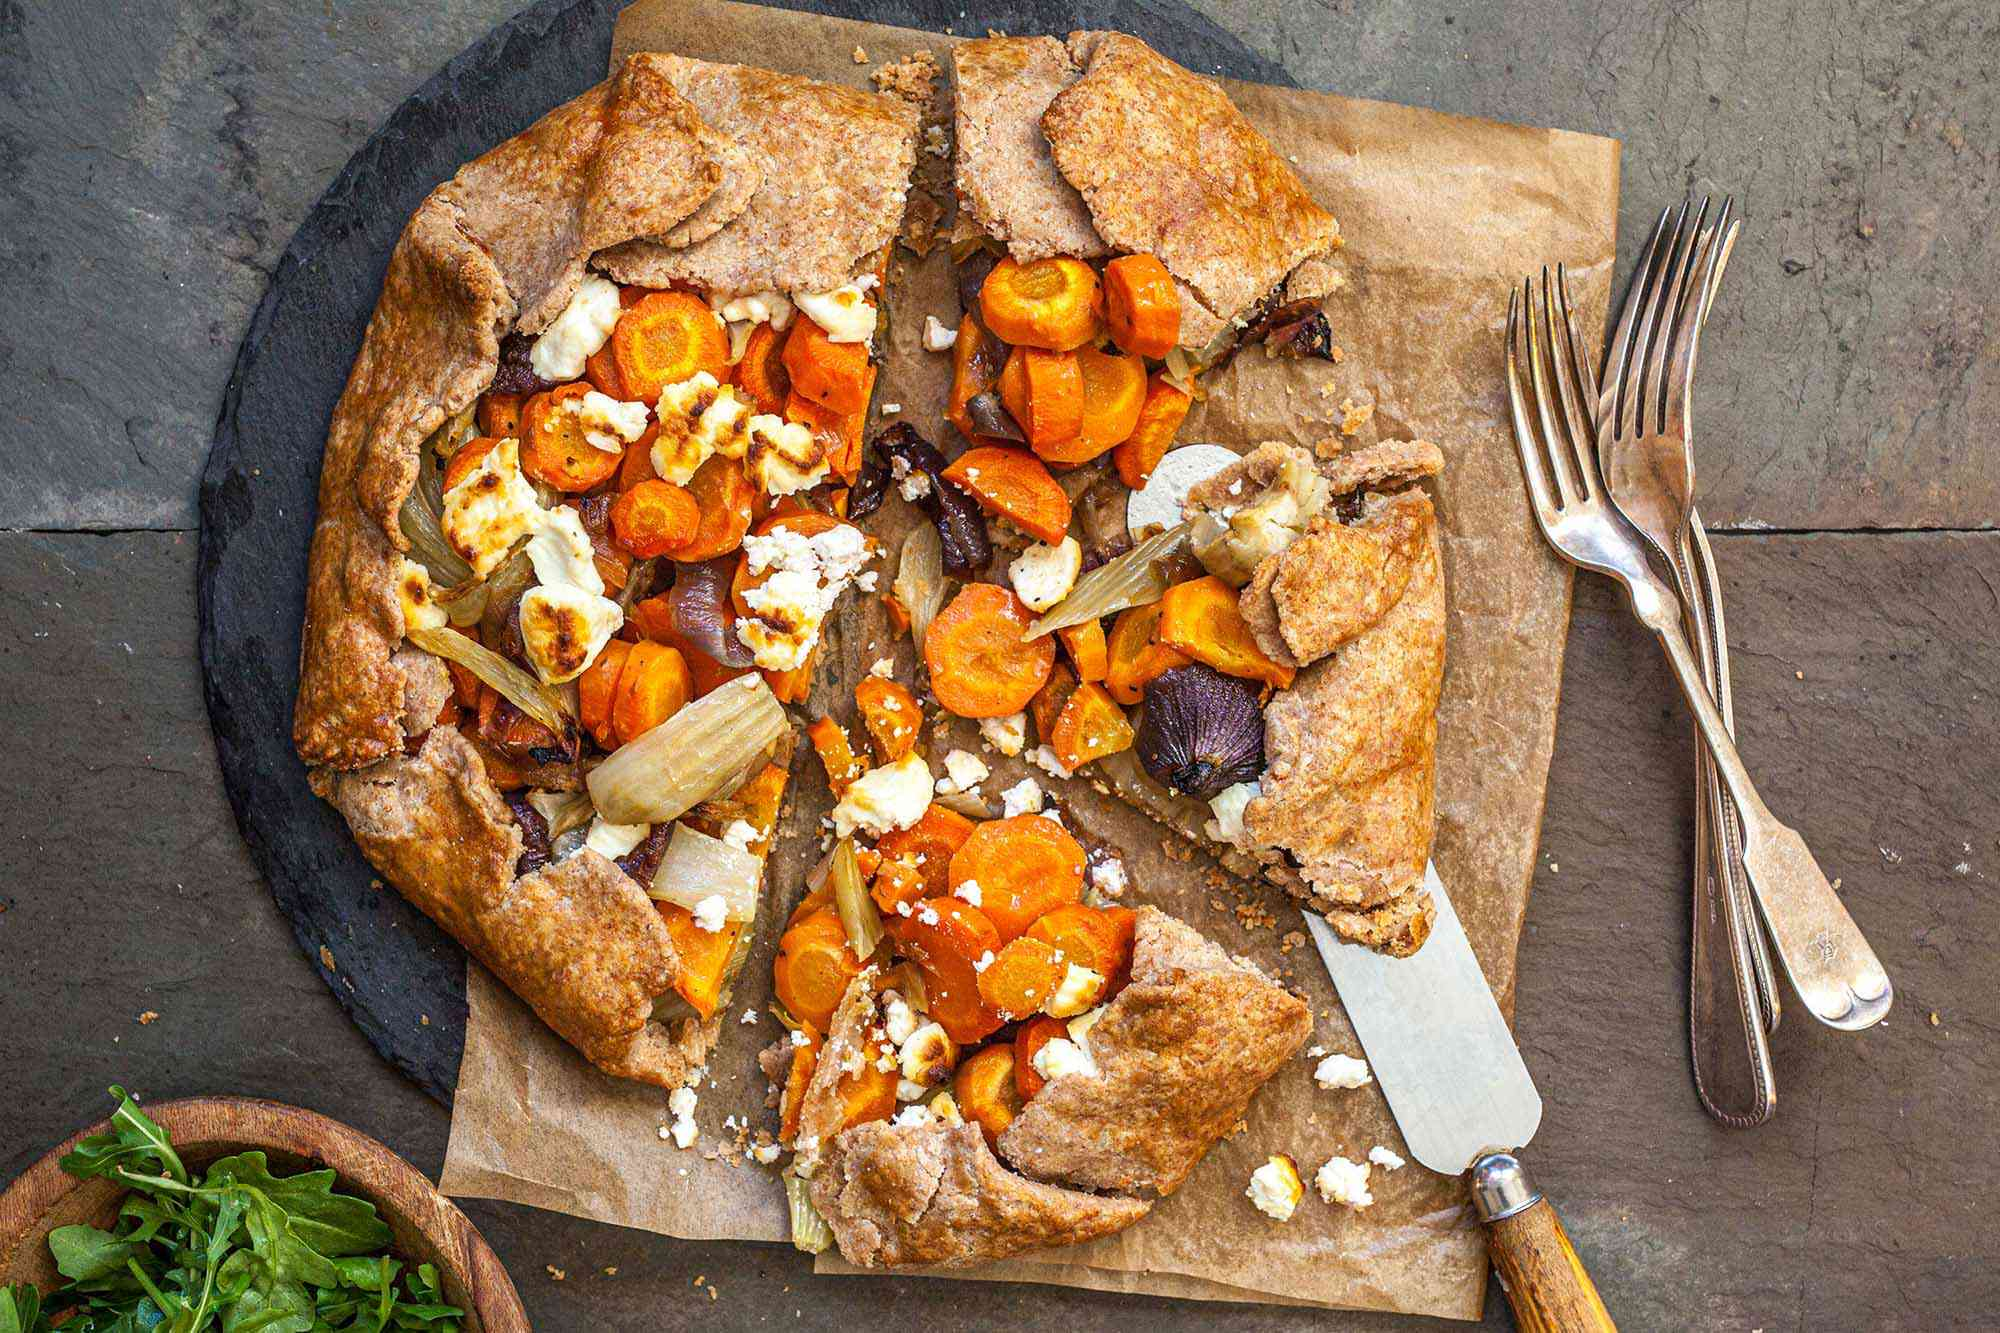 Rustic Winter Vegetable Galette cut into slices.